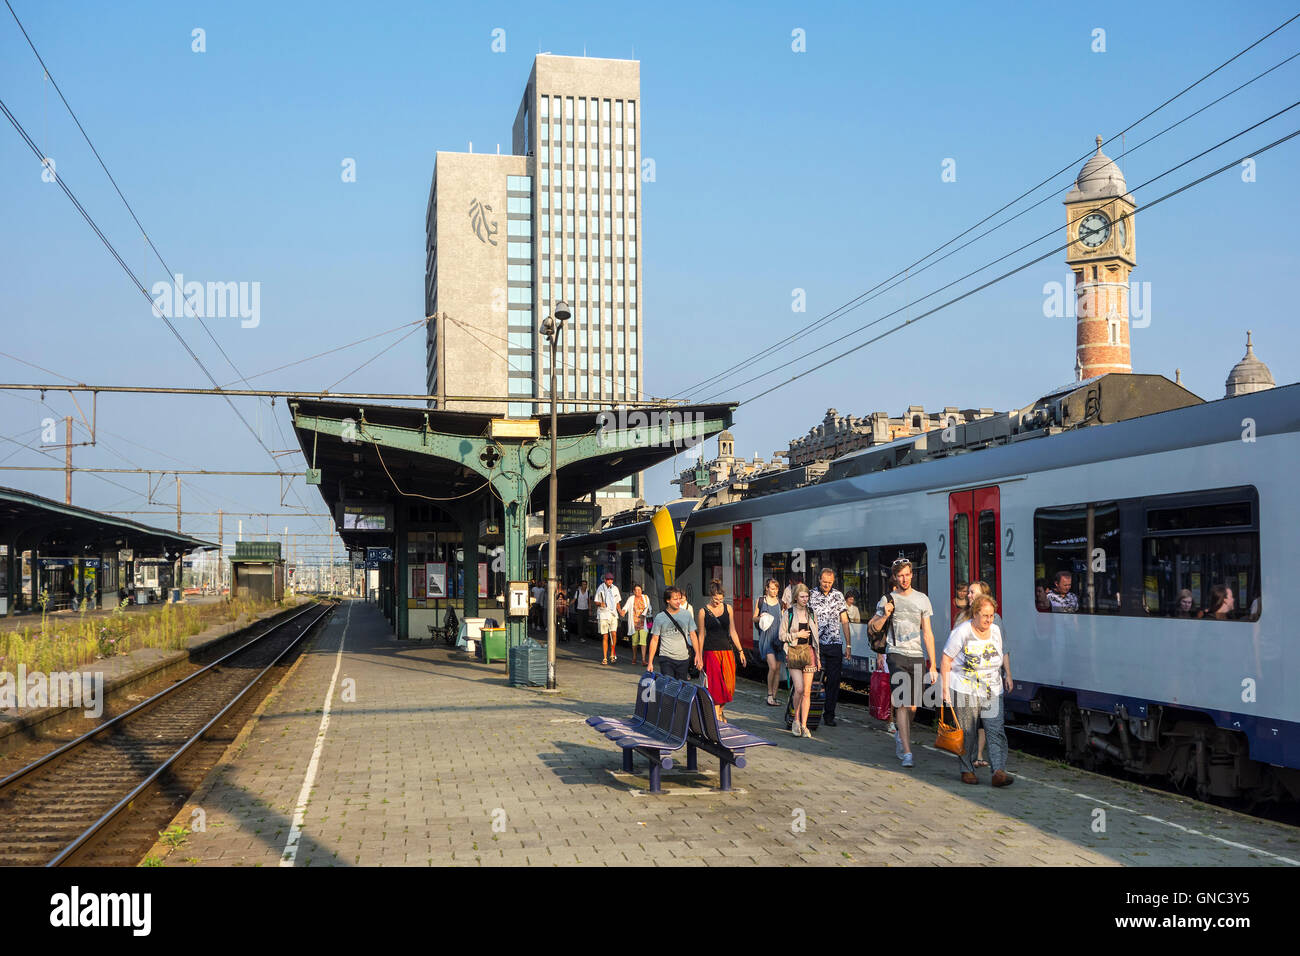 Passenger train at platform in the Gent-Sint-Pieters / Saint Peter's railway station in Ghent, East Flanders, - Stock Image